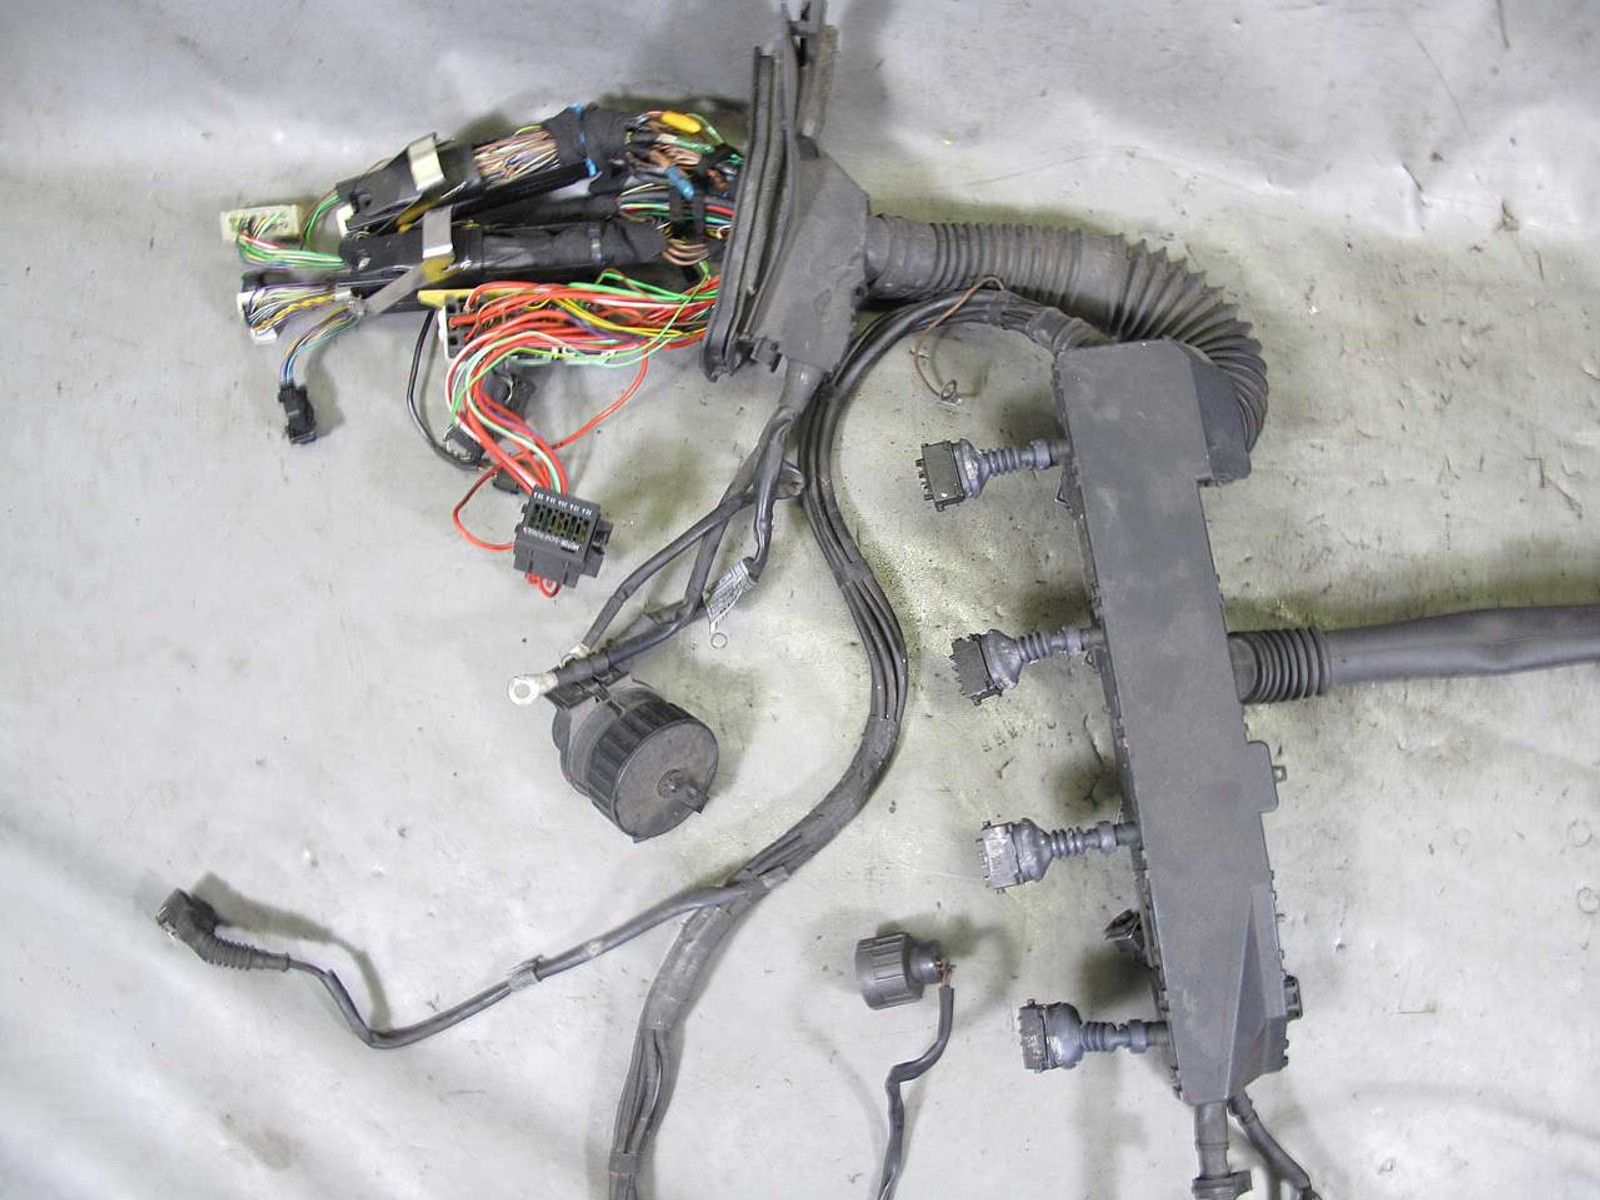 medium resolution of bmw 740il engine wiring harness wiring diagram expert bmw 740il engine wiring harness